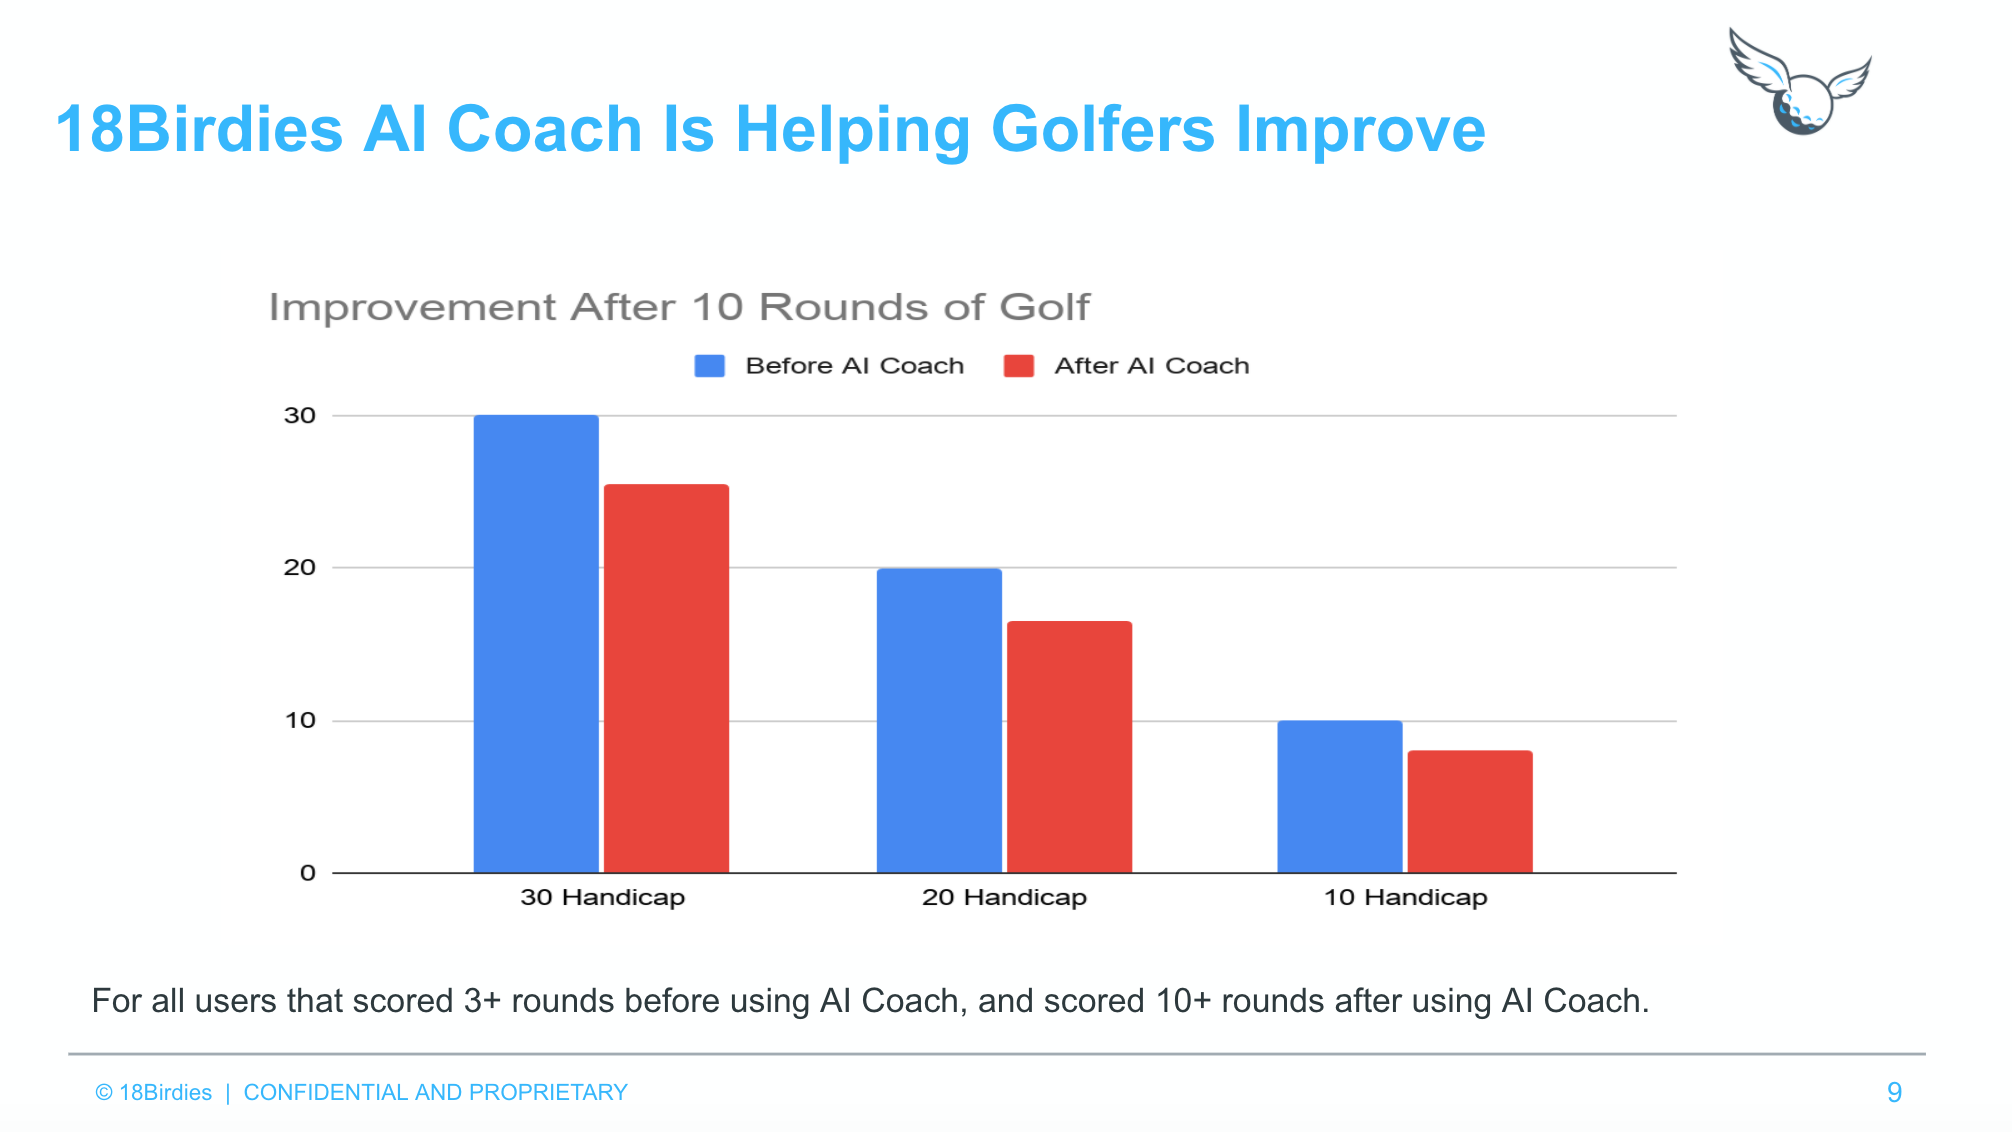 THE DATA SHOWS THAT AI COACH IS HELPING GOLFERS IMPROVE feature image